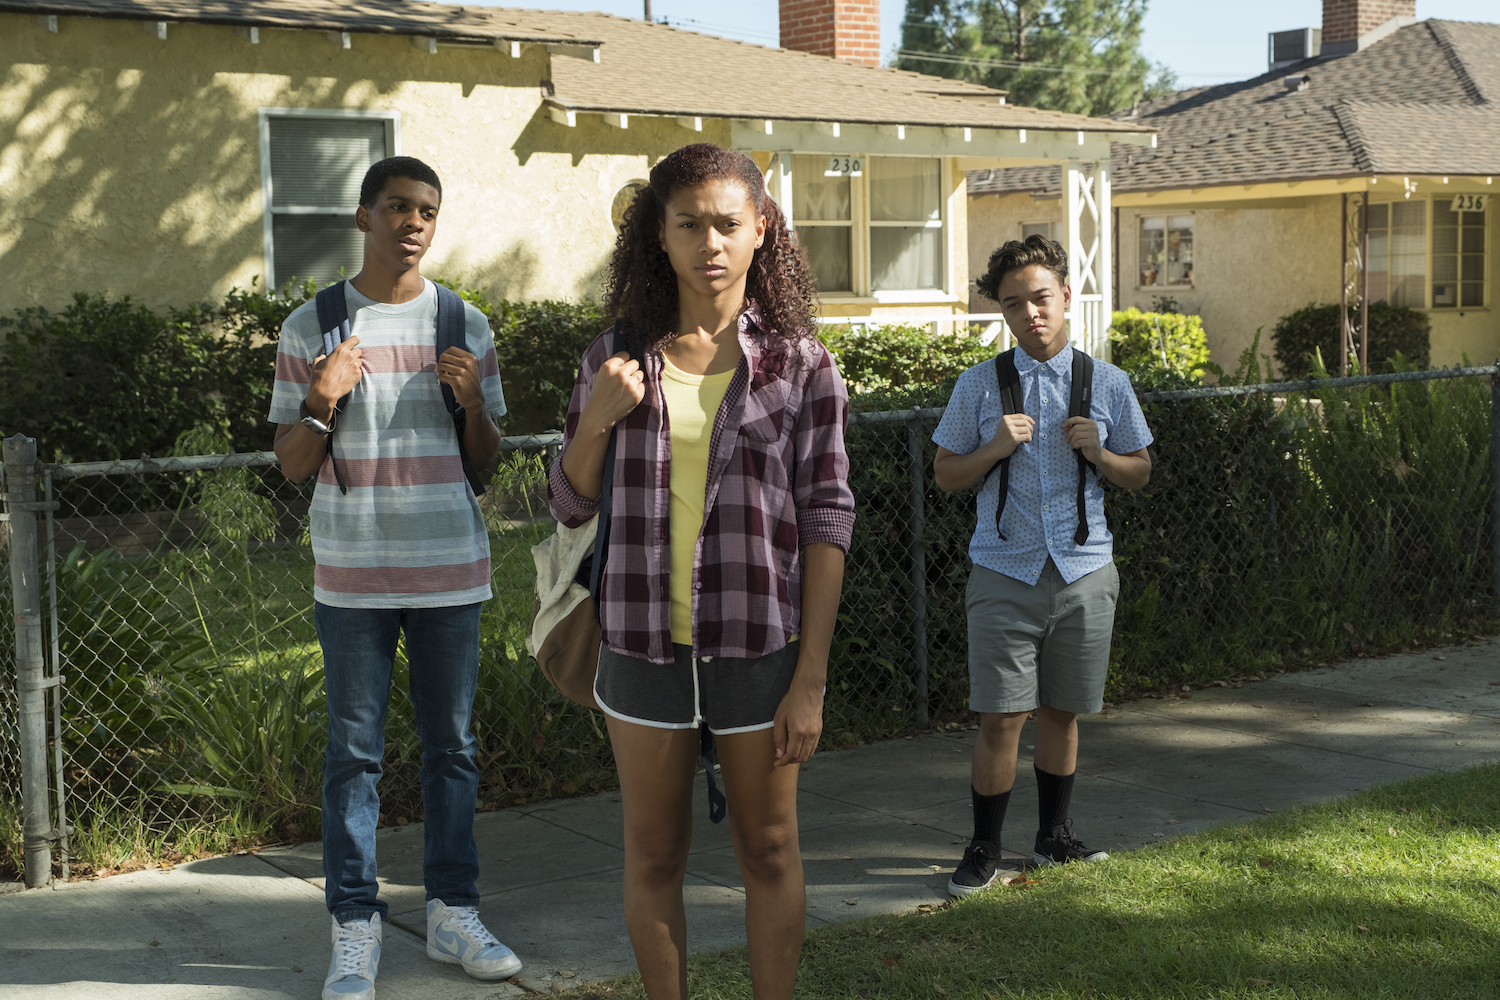 Amid Controversy, Netflix Renews 'On My Block' for Season 2